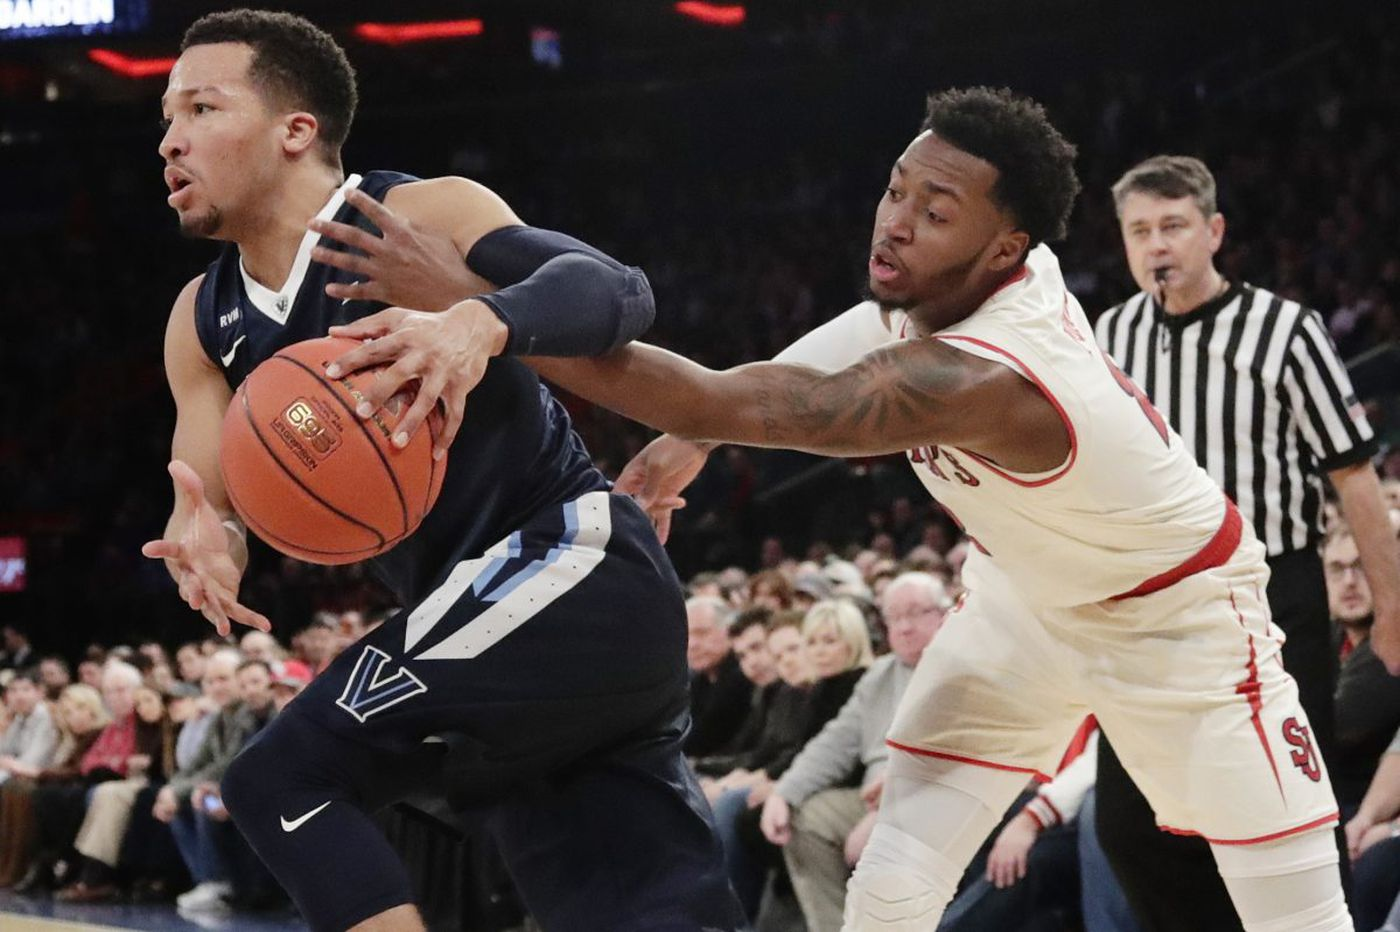 Villanova overcomes upset bid by St. John's